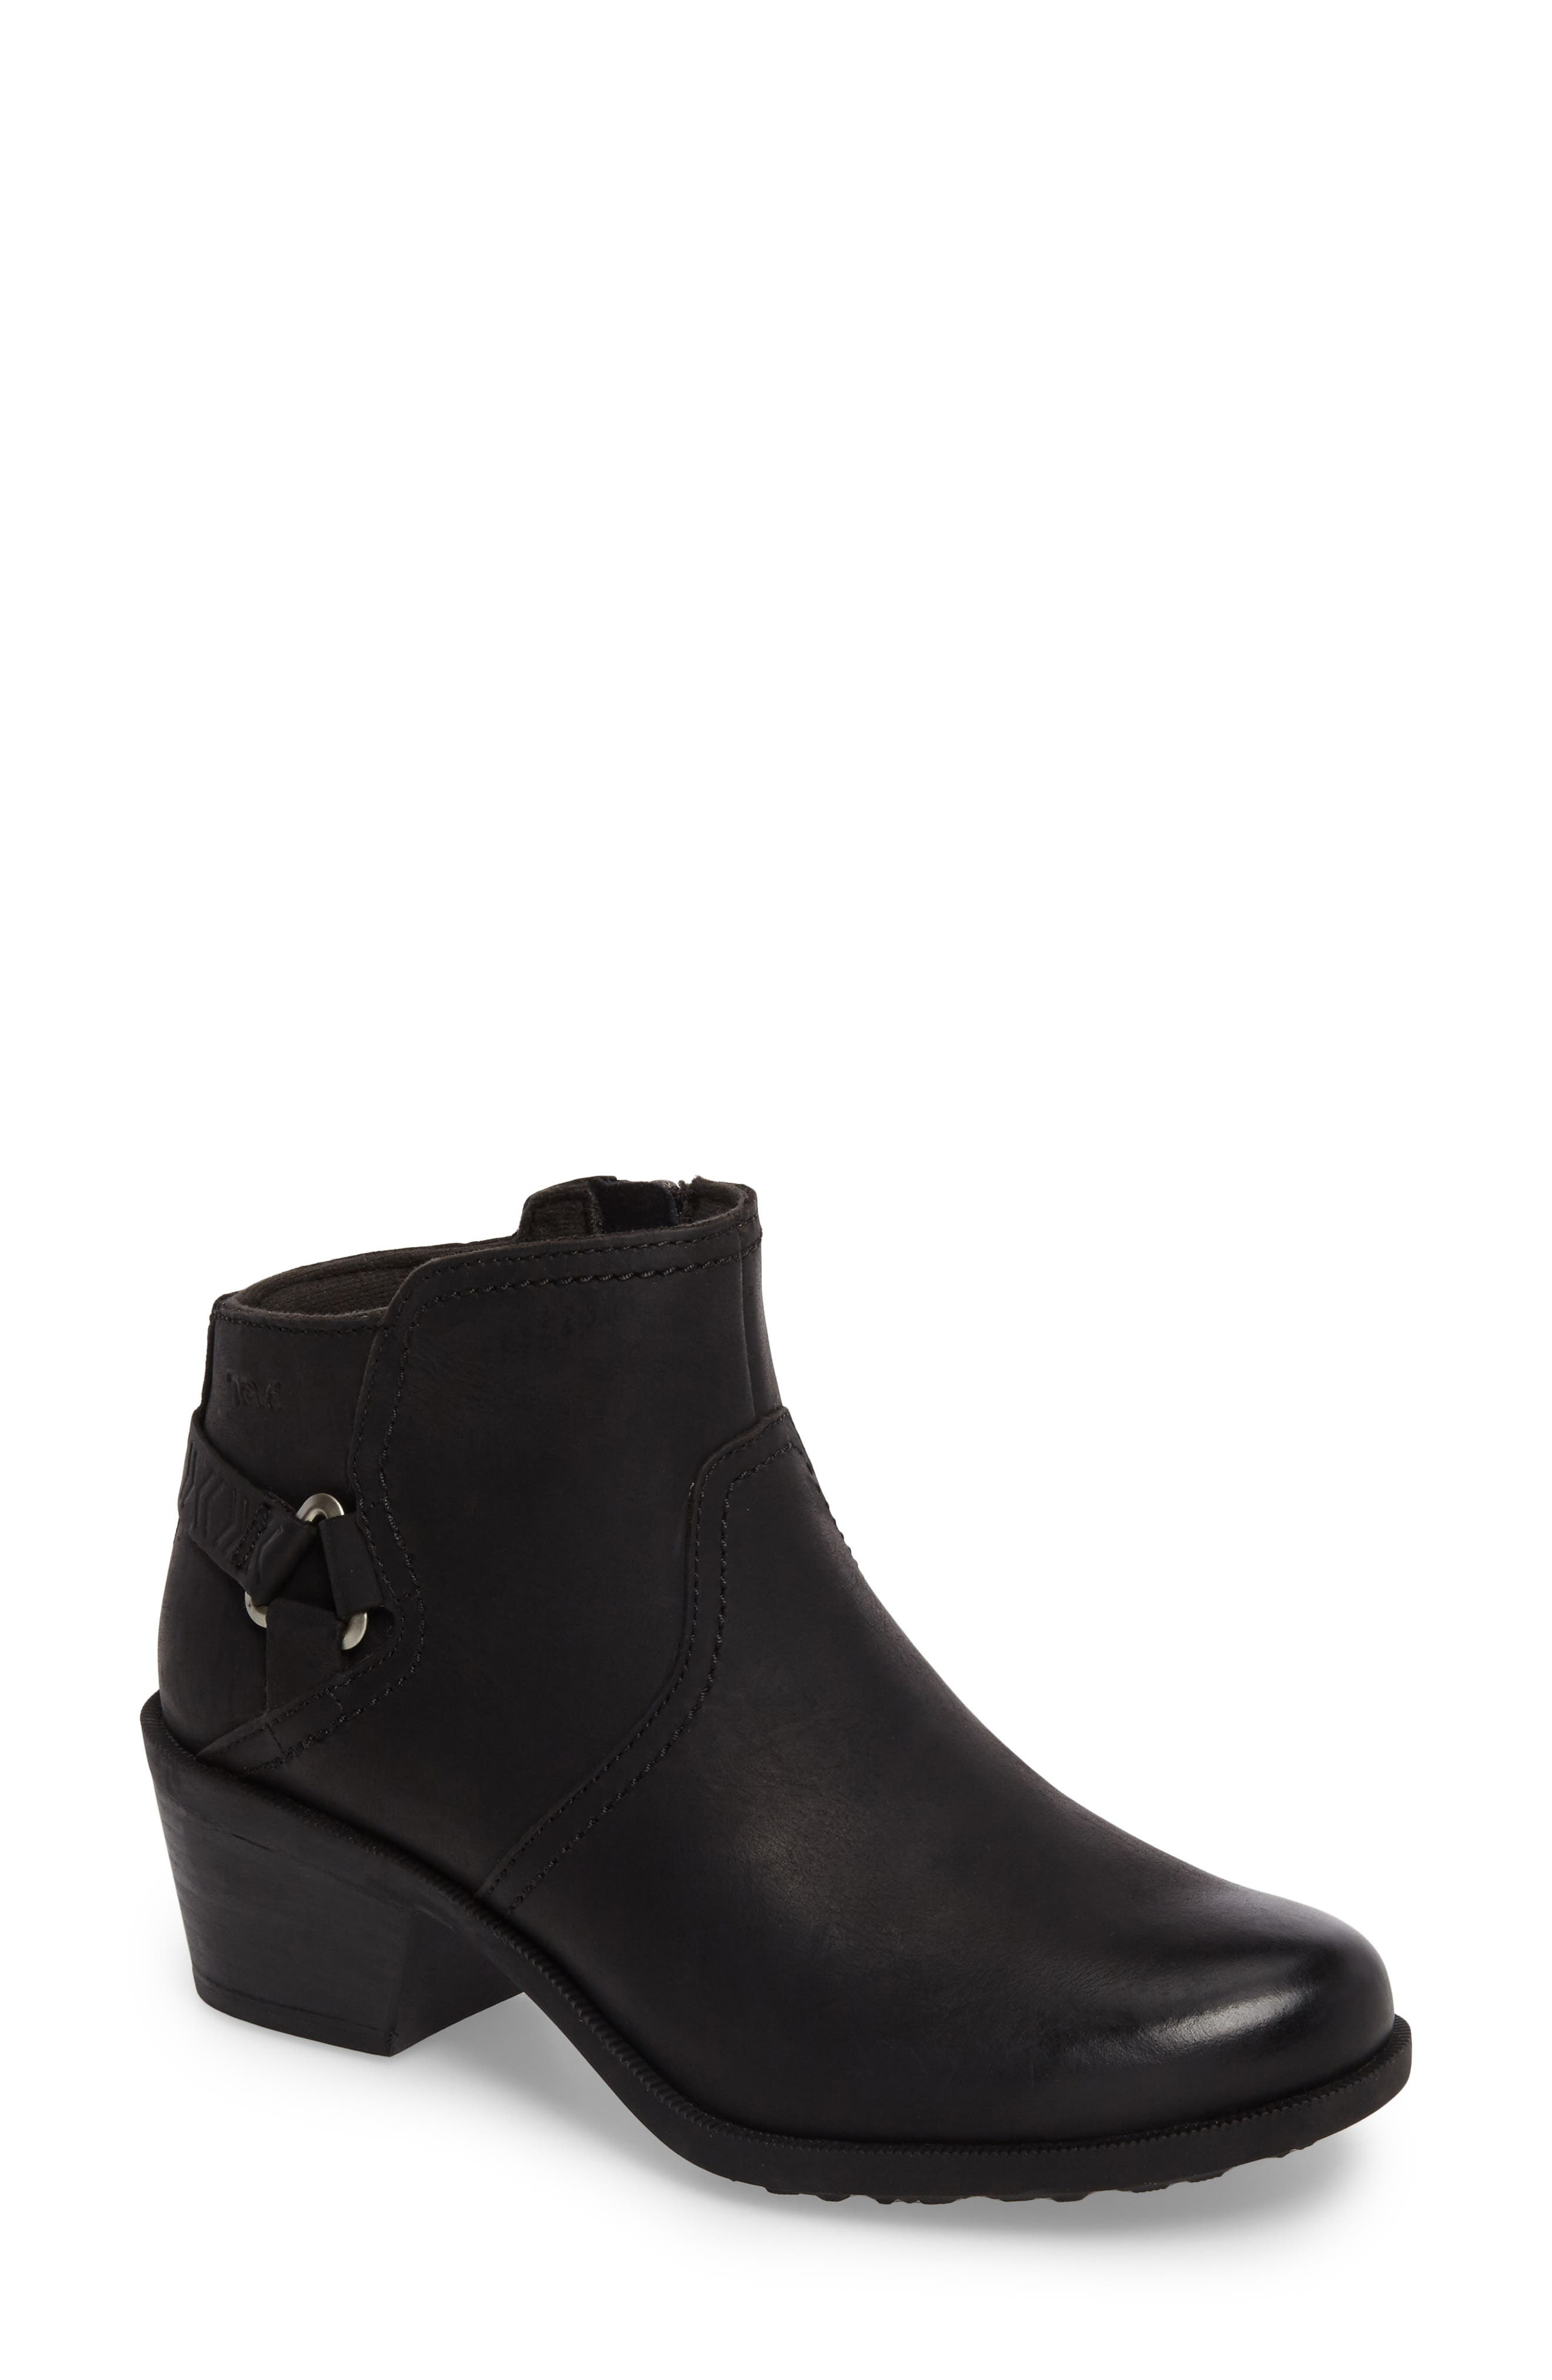 'Foxy' Bootie,                         Main,                         color, BLACK LEATHER